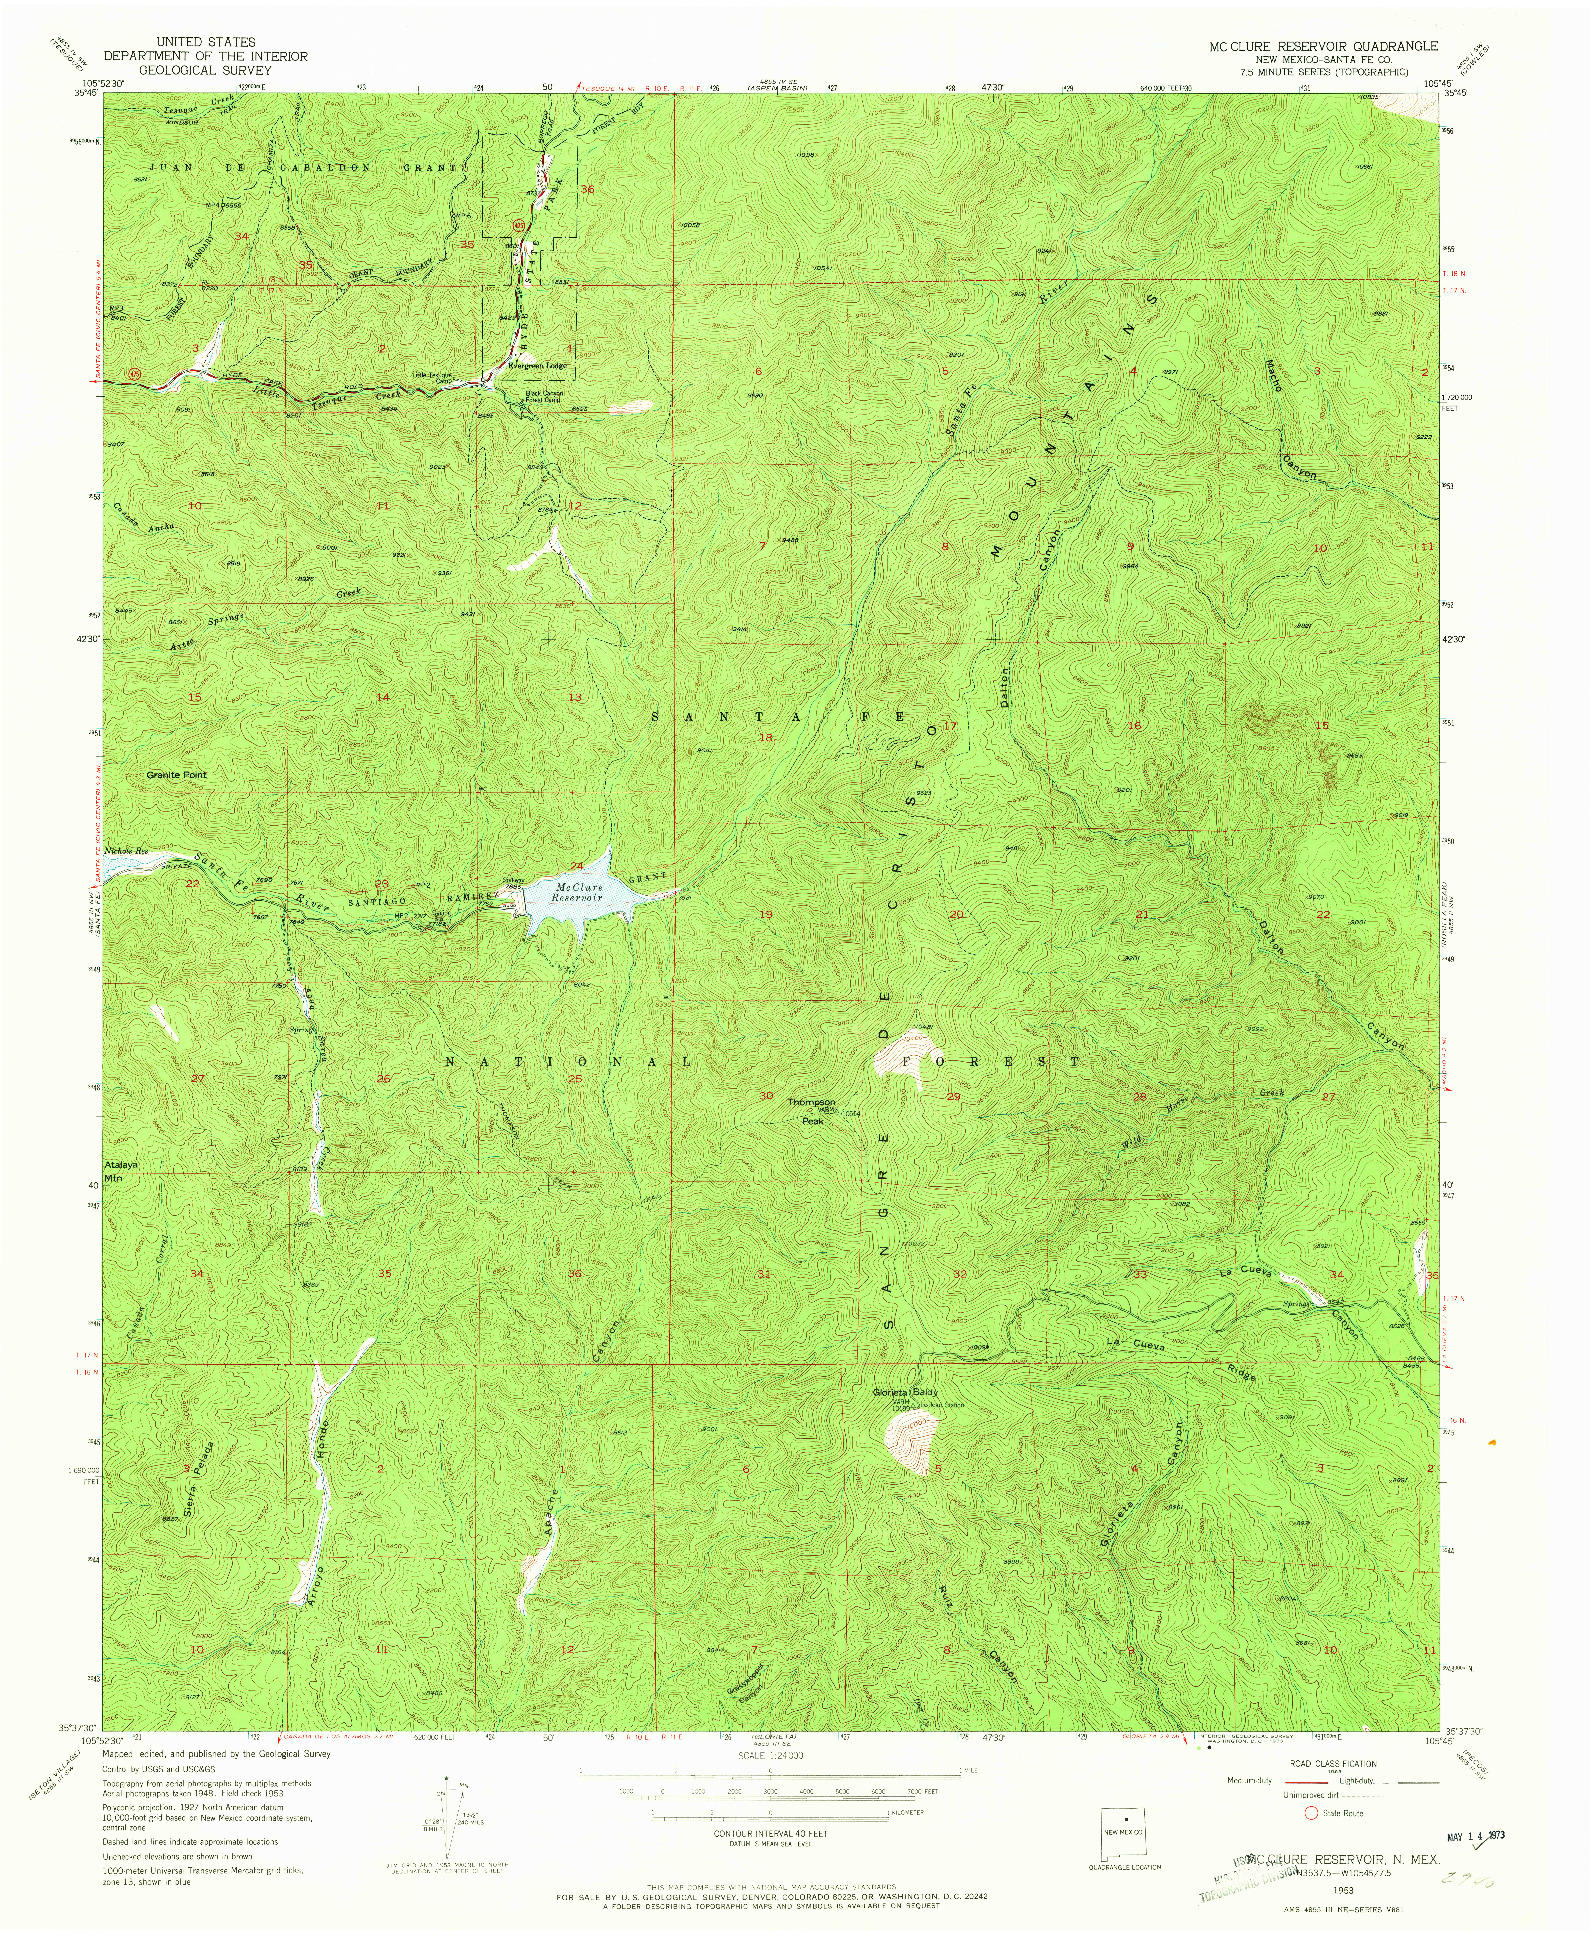 USGS 1:24000-SCALE QUADRANGLE FOR MC CLURE RESERVOIR, NM 1953